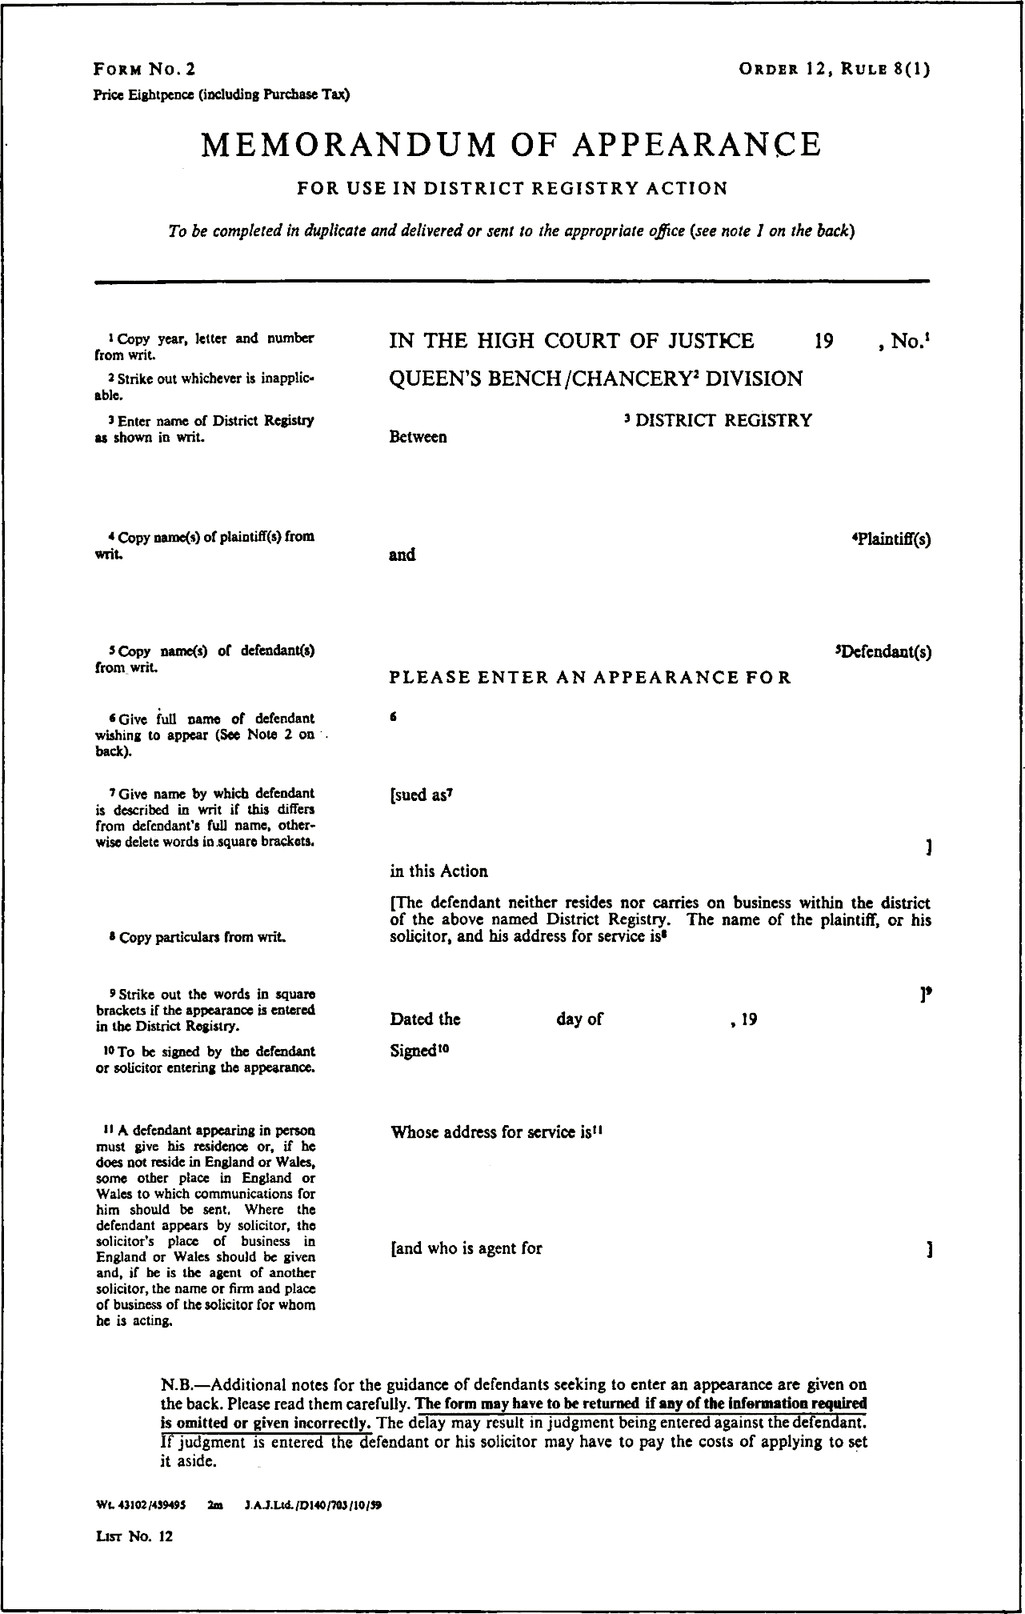 Form No.2. Price Eightpence (including Purchase Tax). Order 12, Rule 8 (1). MEMORANDUM OF APPEARANCE FOR USE IN DISTRICT REGISTRY ACTION To be completed in duplicate and delivered or sent to the appropriate office (see note 1 on the back). IN THE HIGH COURT OF JUSTICE, blank field, 19, blank field, No. (Copy year, letter and number from writ.) QUEEN'S BENCH /CHANCERY DIVISION. (Strike out whichever is inapplicable.). blank field, DISTRICT REGISTRY. (Enter name of District Registry as shown in writ.). Between, blank field, Plaintiff(s), and, blank field, Defendant(s). (Copy name(s) of plaintiff(s) from writ.) (Copy name(s) of defendant(s) from writ.) PLEASE ENTER AN APPEARANCE FOR, blank field. (Give full name of defendant wishing to appear (See Note 2 on back).). [sued as, blank field], in this Action. (Give name by which defendant is described in writ if this differs from defendant's full name, otherwise delete words in square brackets.). [The defendant neither resides nor carries on business within the district of the above named District Registry. The name of the plaintiff, or his solicitor, and his address for service is]. (Strike out the words in square brackets if the appearance is entered in the District Registry.) (Copy particulars from writ.) Dated the, blank field, day of, blank field, 19, blank field. Signed, blank field. (To be signed by the defendant or solicitor entering the appearance.) Whose address for service is, blank field. (A defendant appearing in person must give his residence or, if he does not reside in England or Wales, some other place in England or Wales to which communications for him should be sent. Where the defendant appears by solicitor, the solicitor's place of business in England or Wales should be given and, if be is the agent of another solicitor, the name or firm and place of business of the solicitor for whom he is acting.) [and who is agent for, blank field, ]. N.B.—Additional notes for the guidance of defendants seeking to en